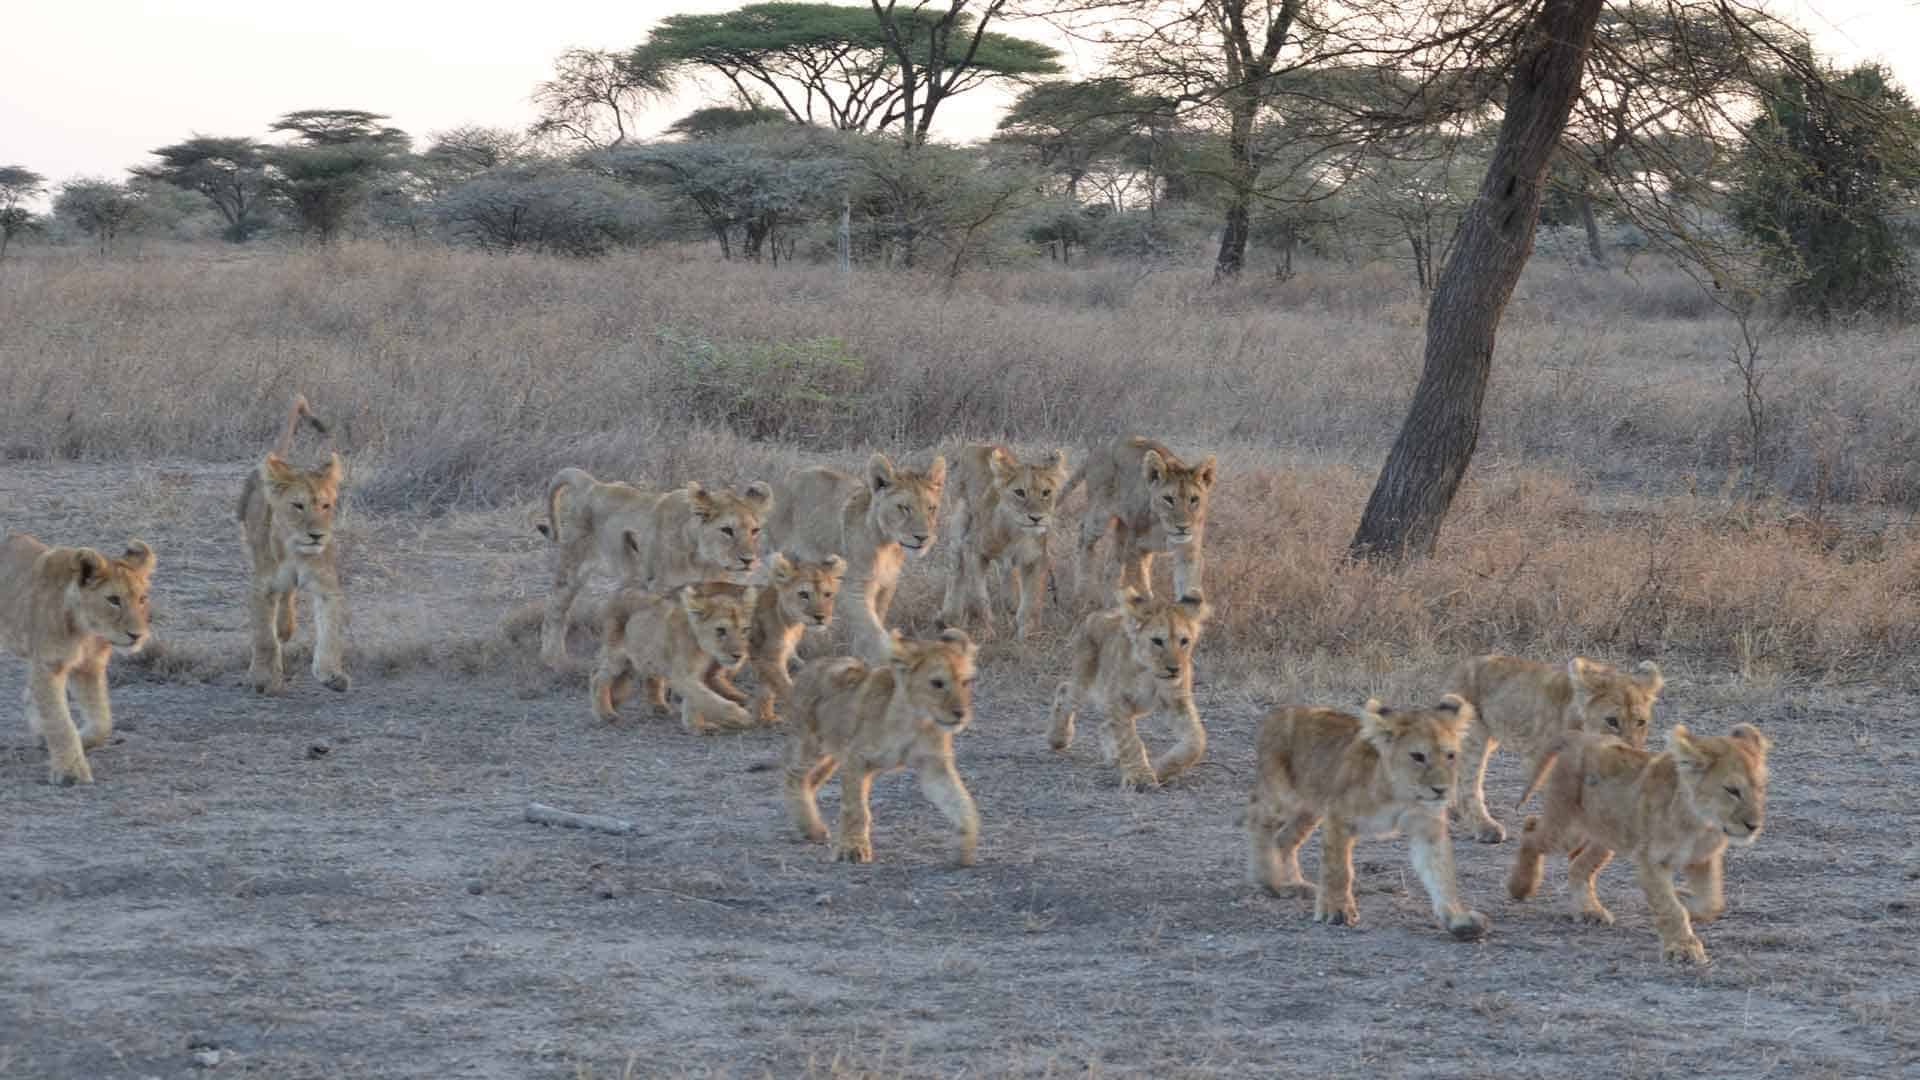 Lion cubs running to the sound of their mothers on safari trip to Africa